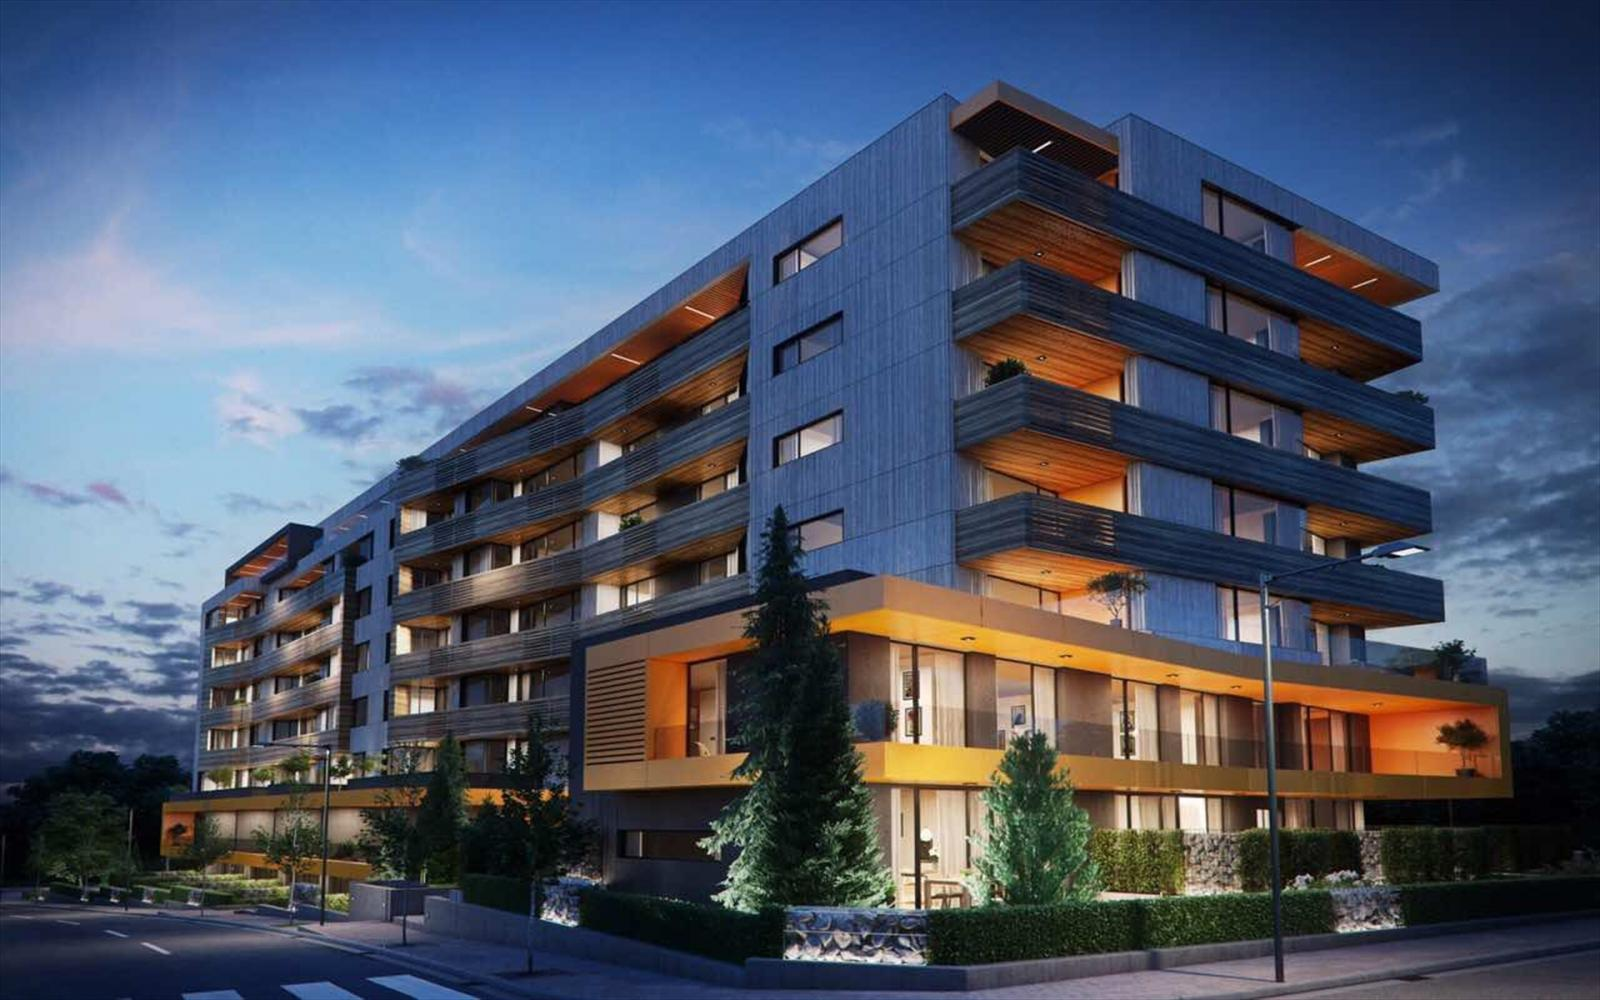 The new project of Unistroy RUHouse is at the foot of Vitosha Mountain